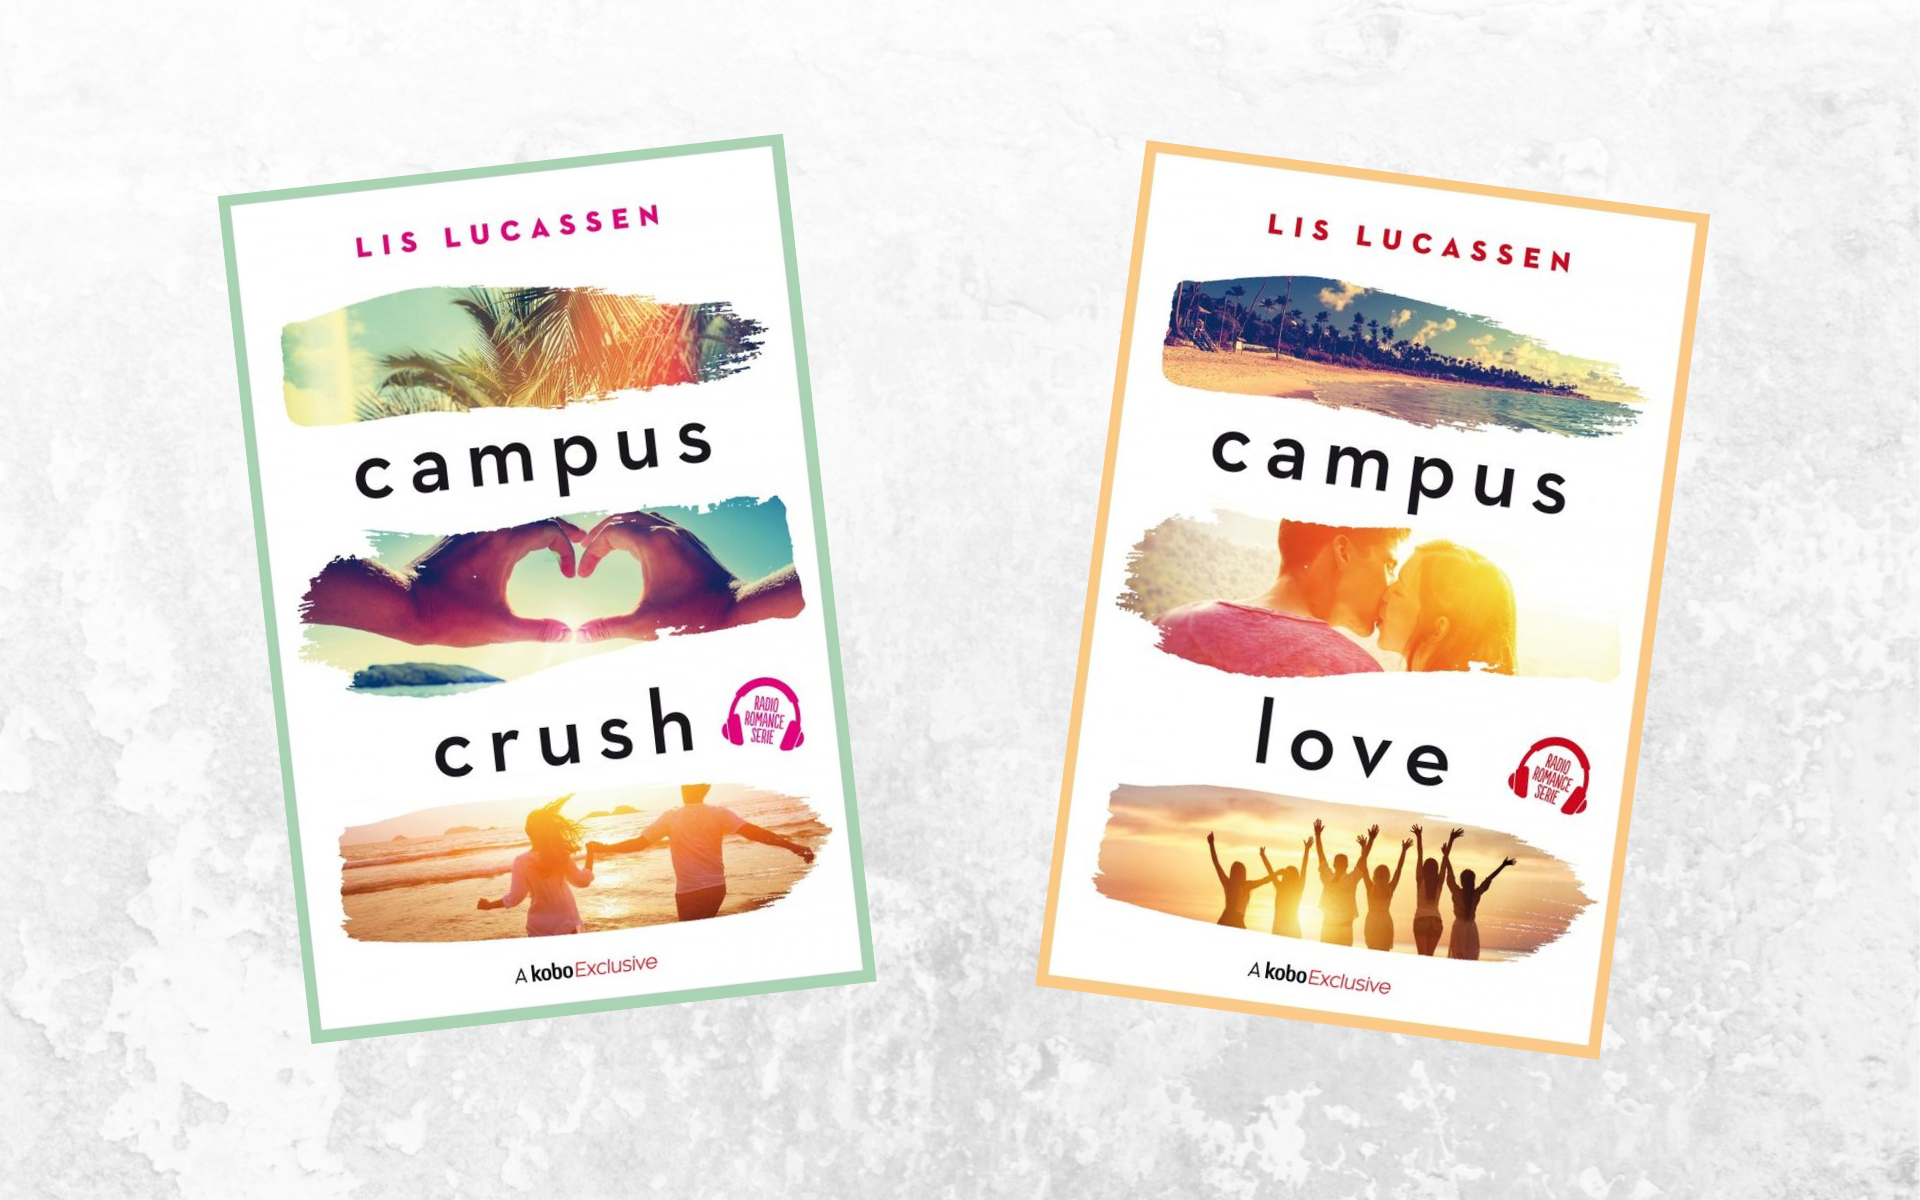 Lis Lucassen Campus Crush Campus Love Radio Romance boeken